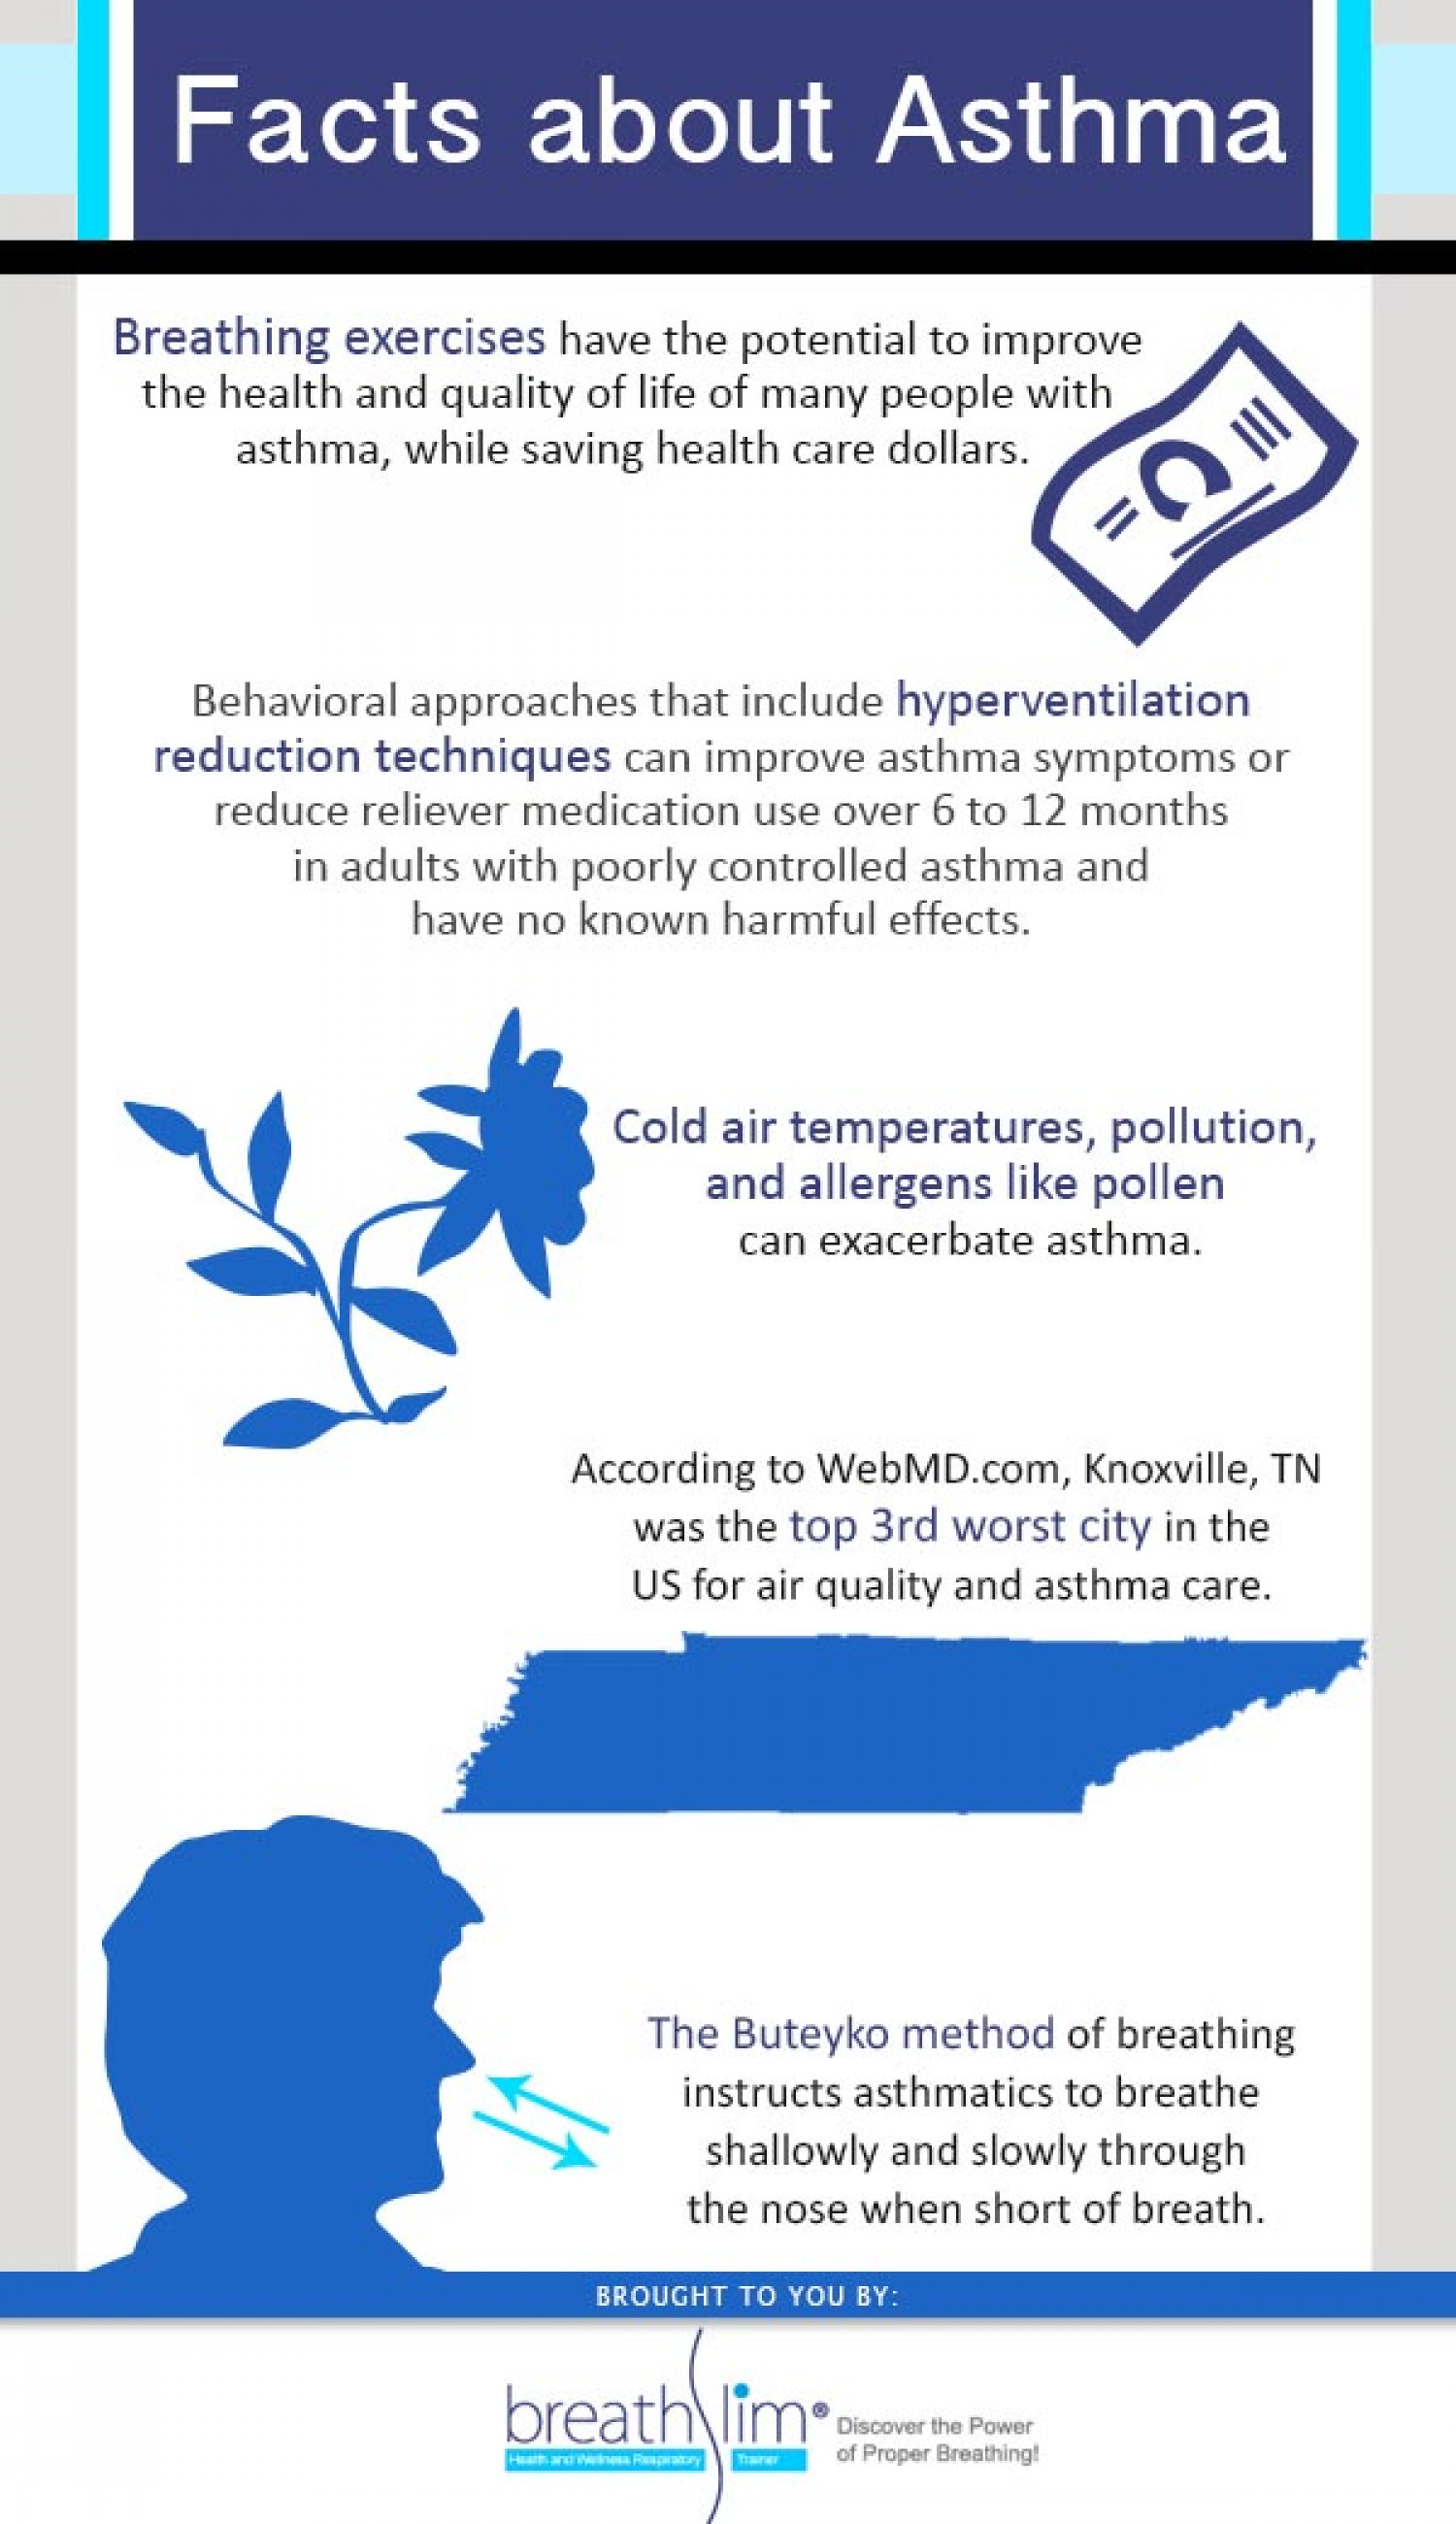 Facts About Asthma Infographic